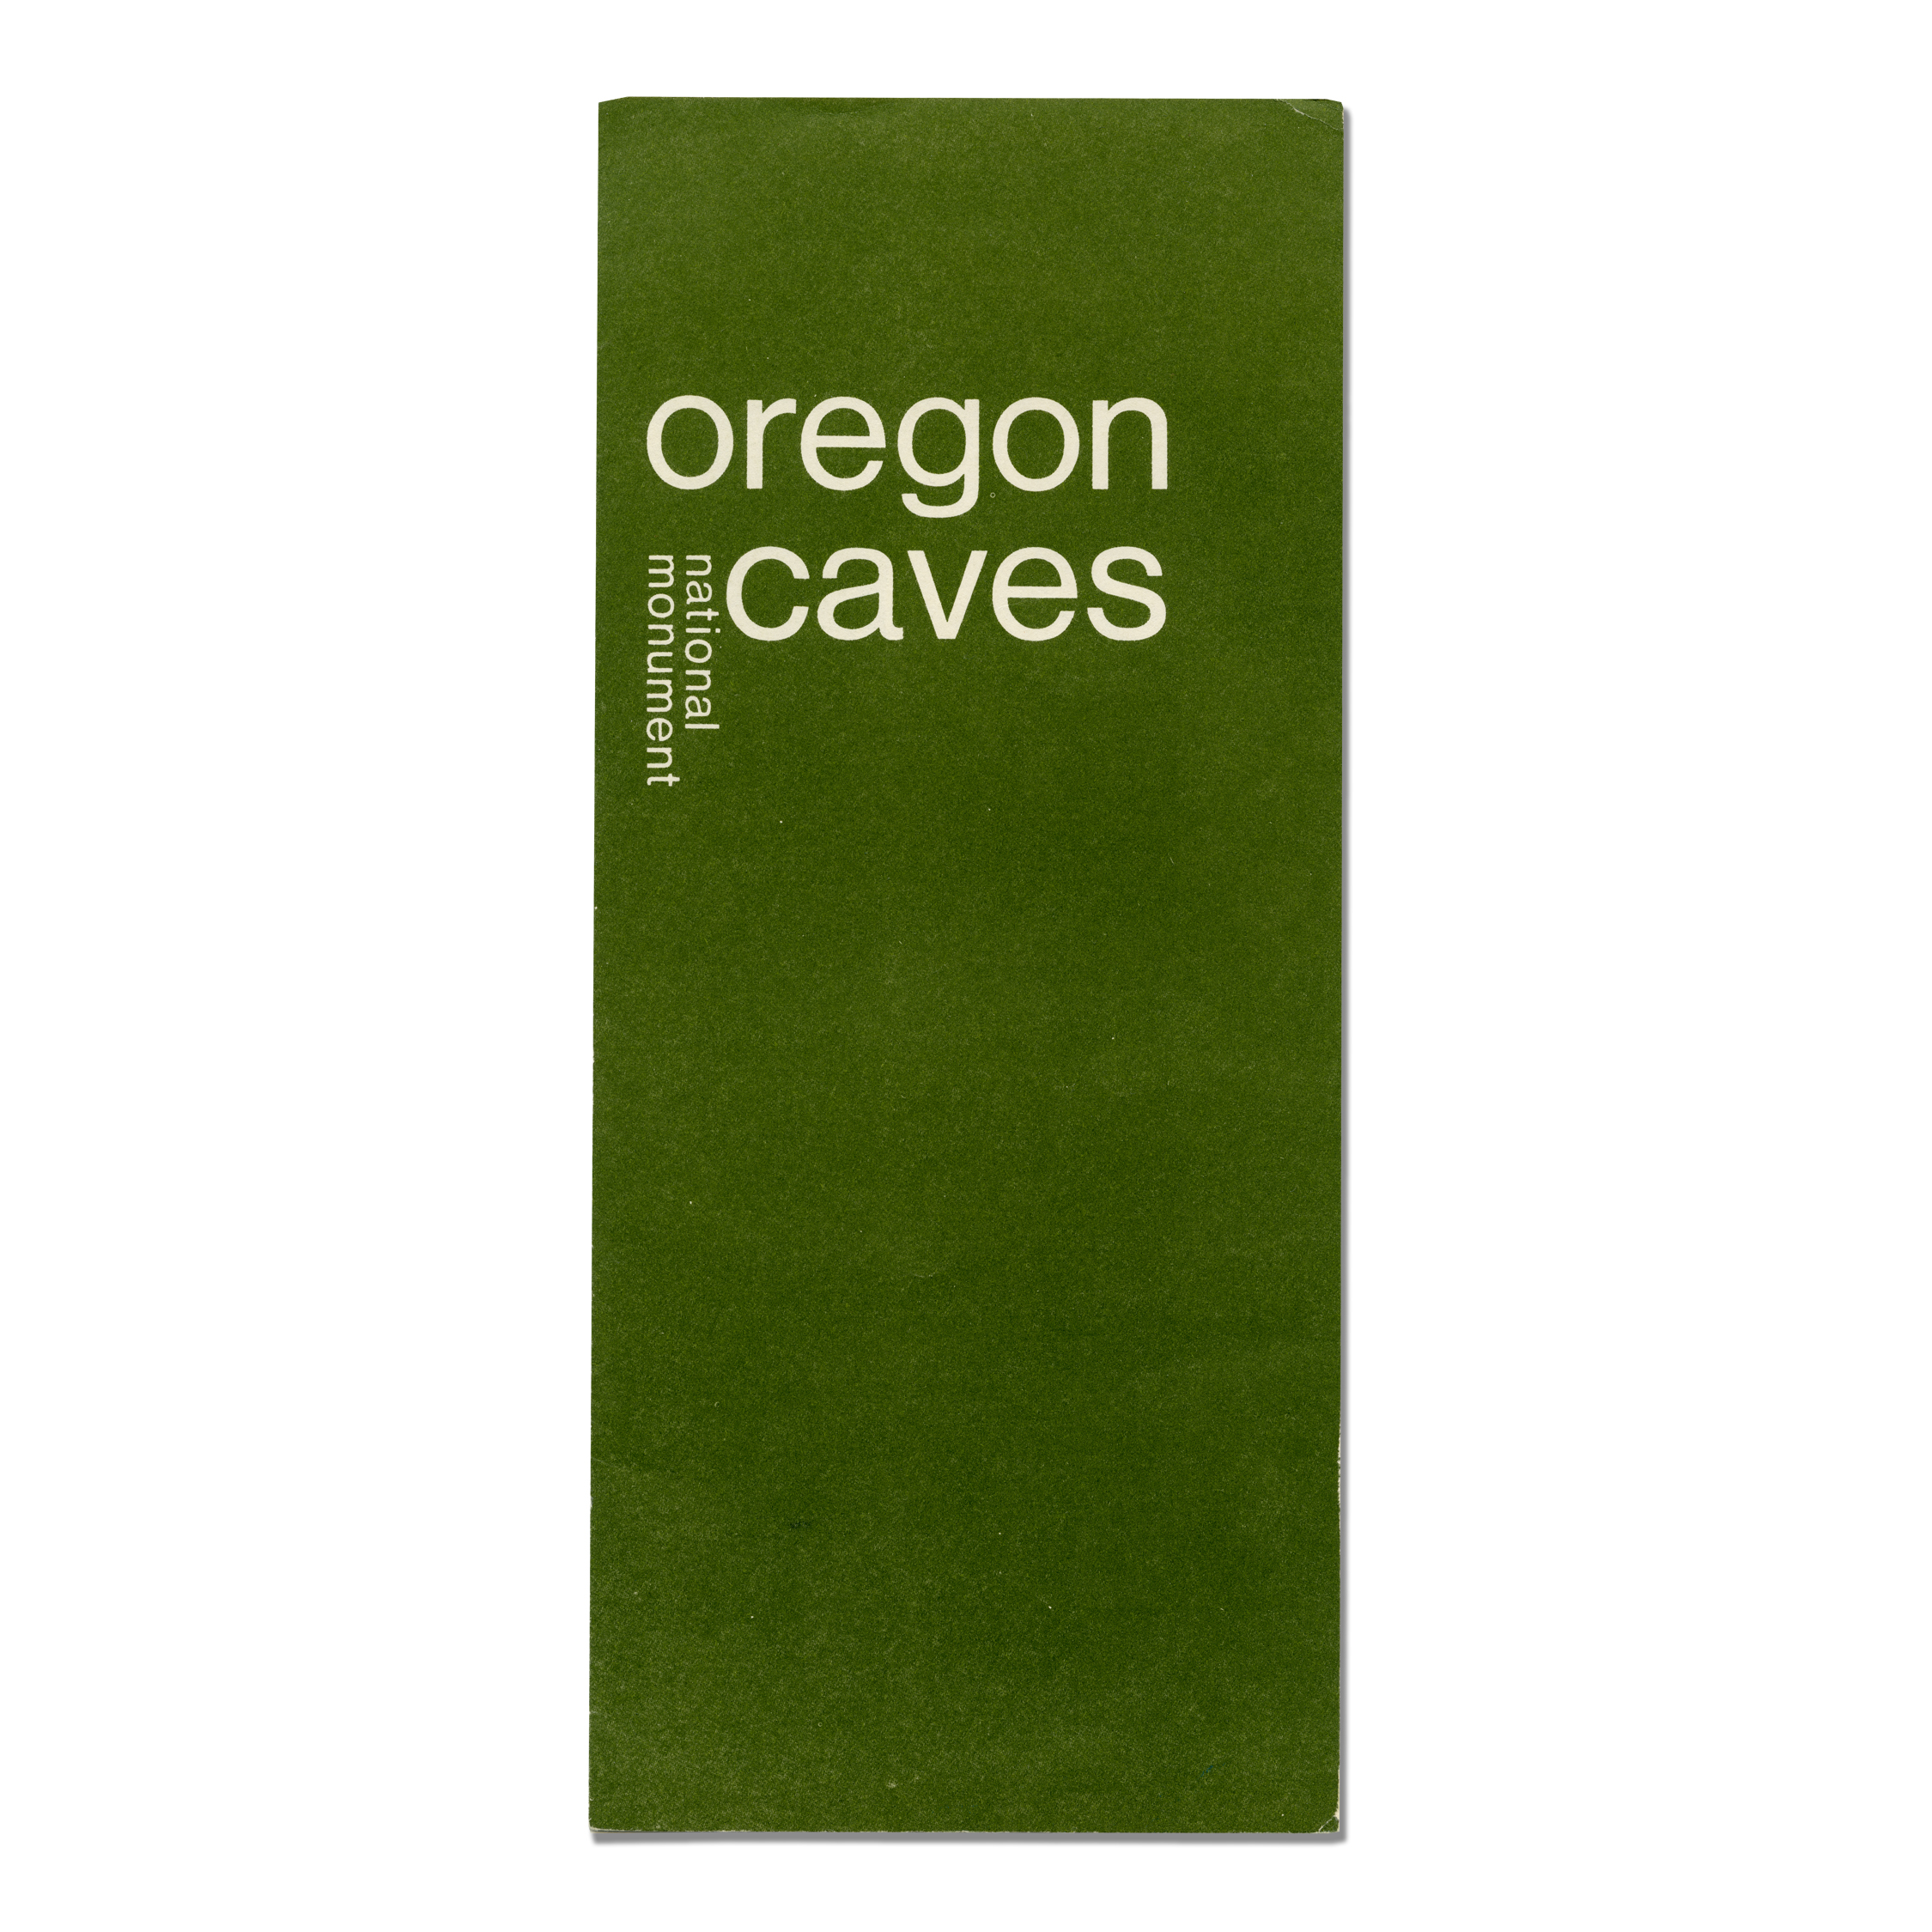 1973_oregon_caves_national_monument_brochure.jpg